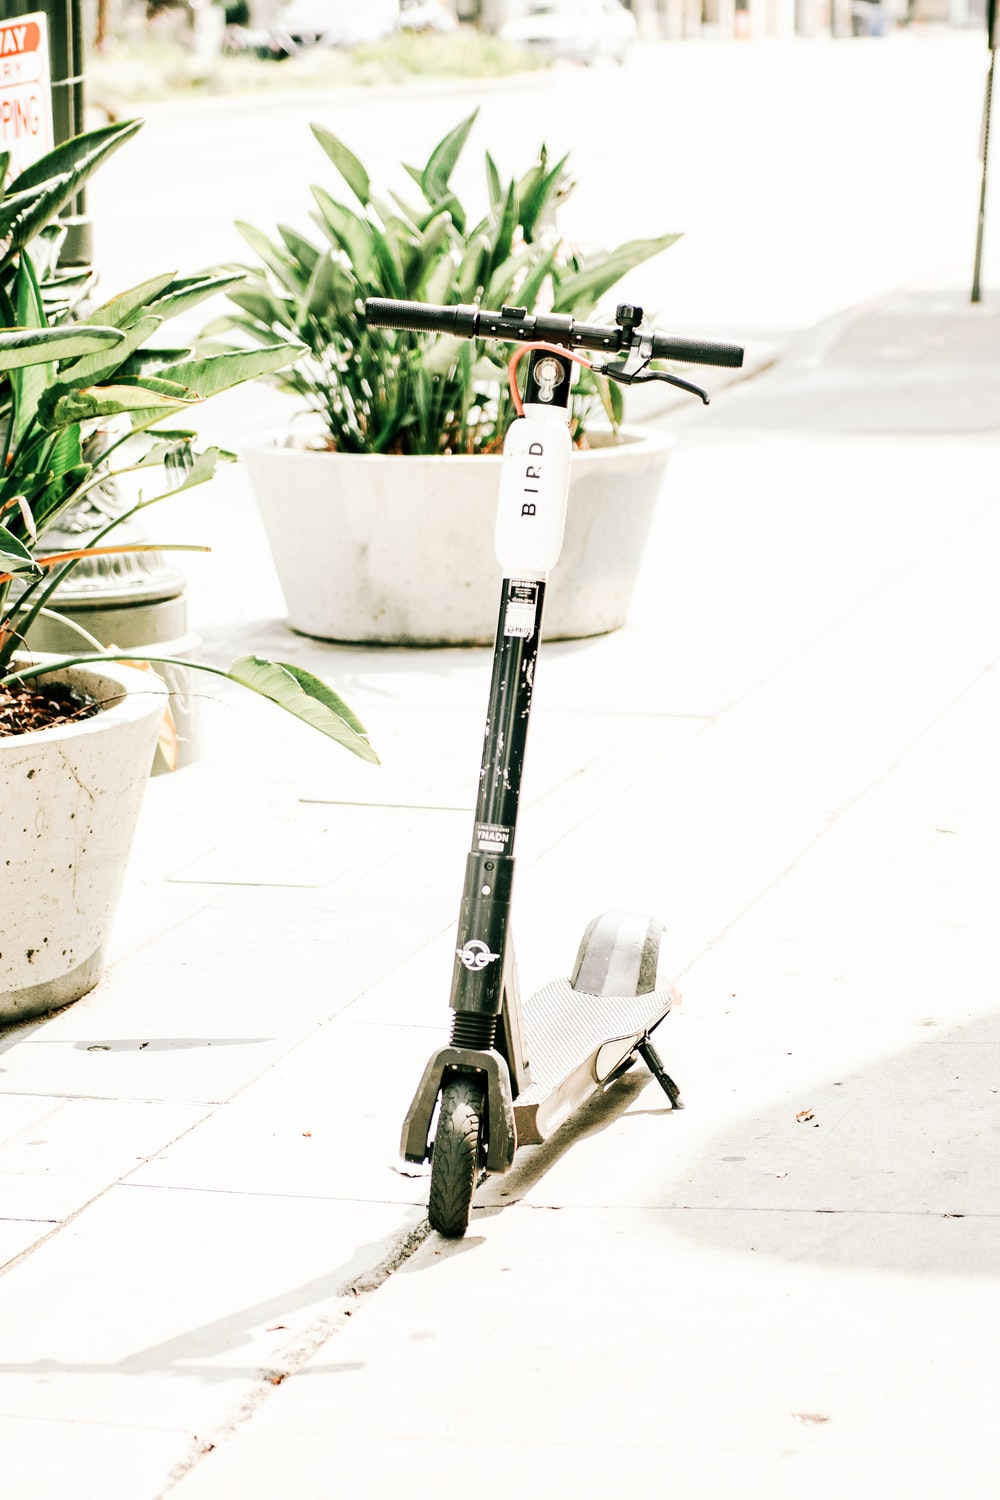 white and black kick scooter parked besides white plant pot